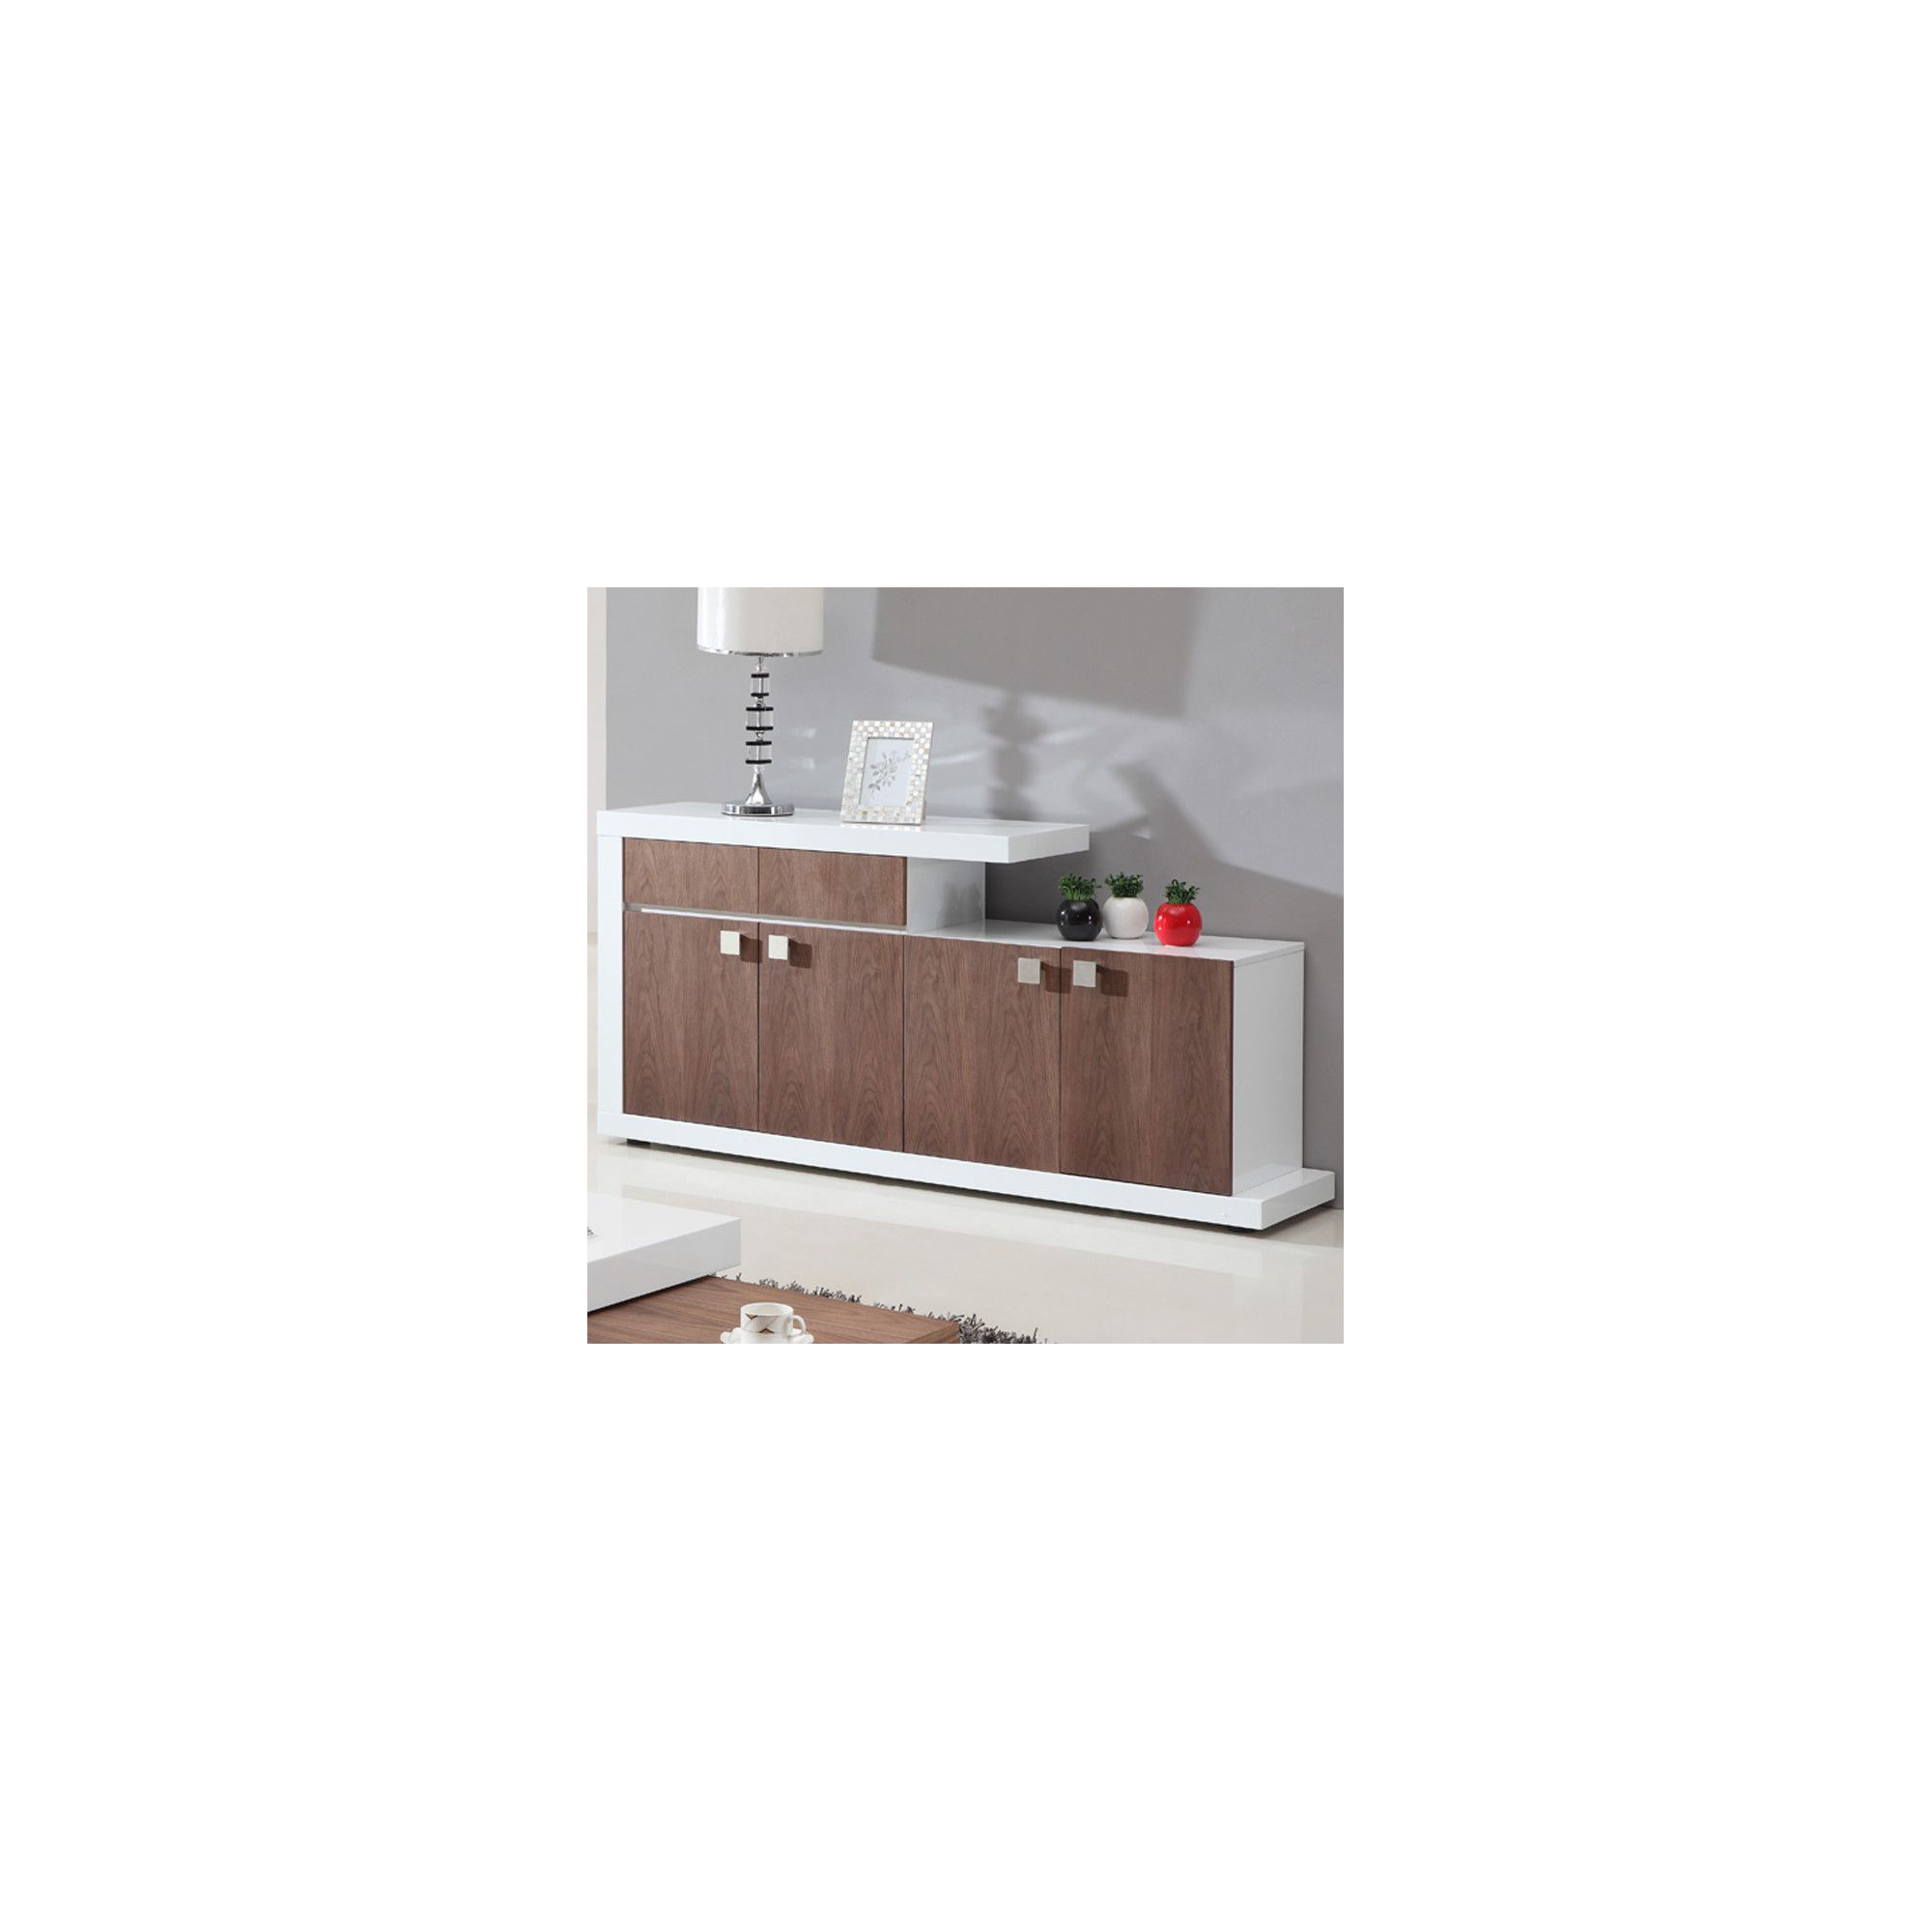 Giomani Designs Walnut Gloss Sideboard at Tescos Direct